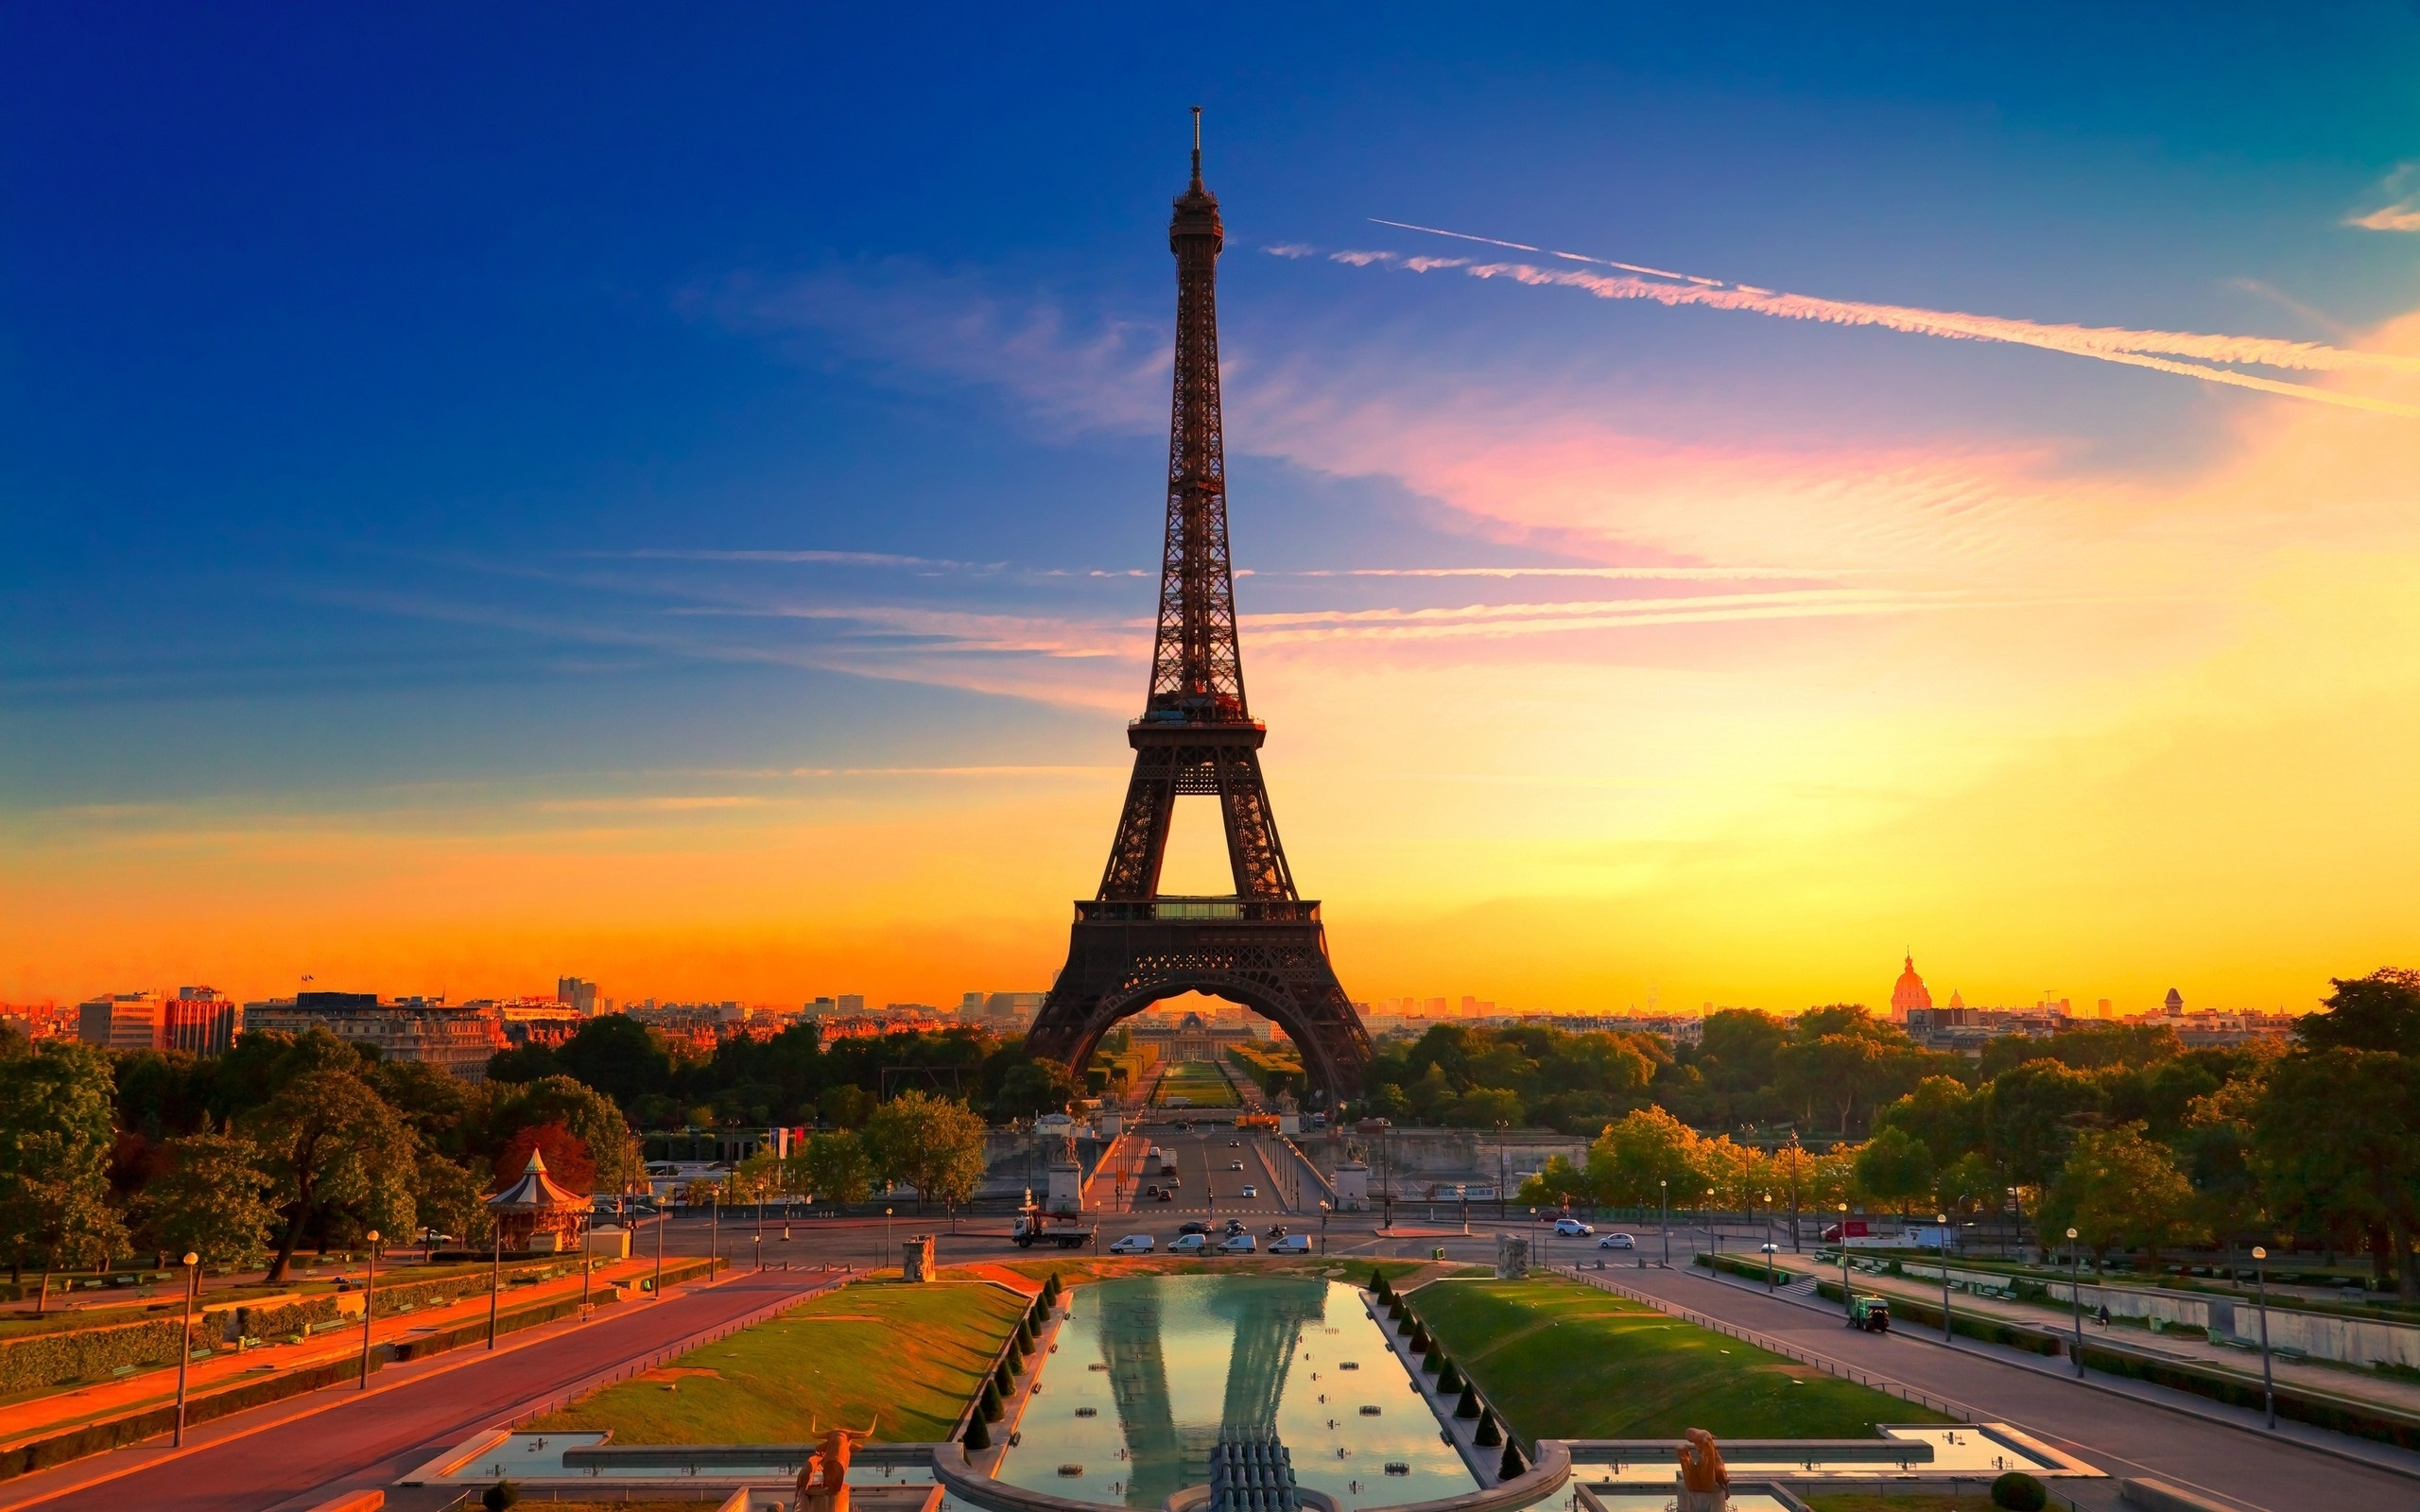 Paris Eiffel Tower at Sunset (click to view)